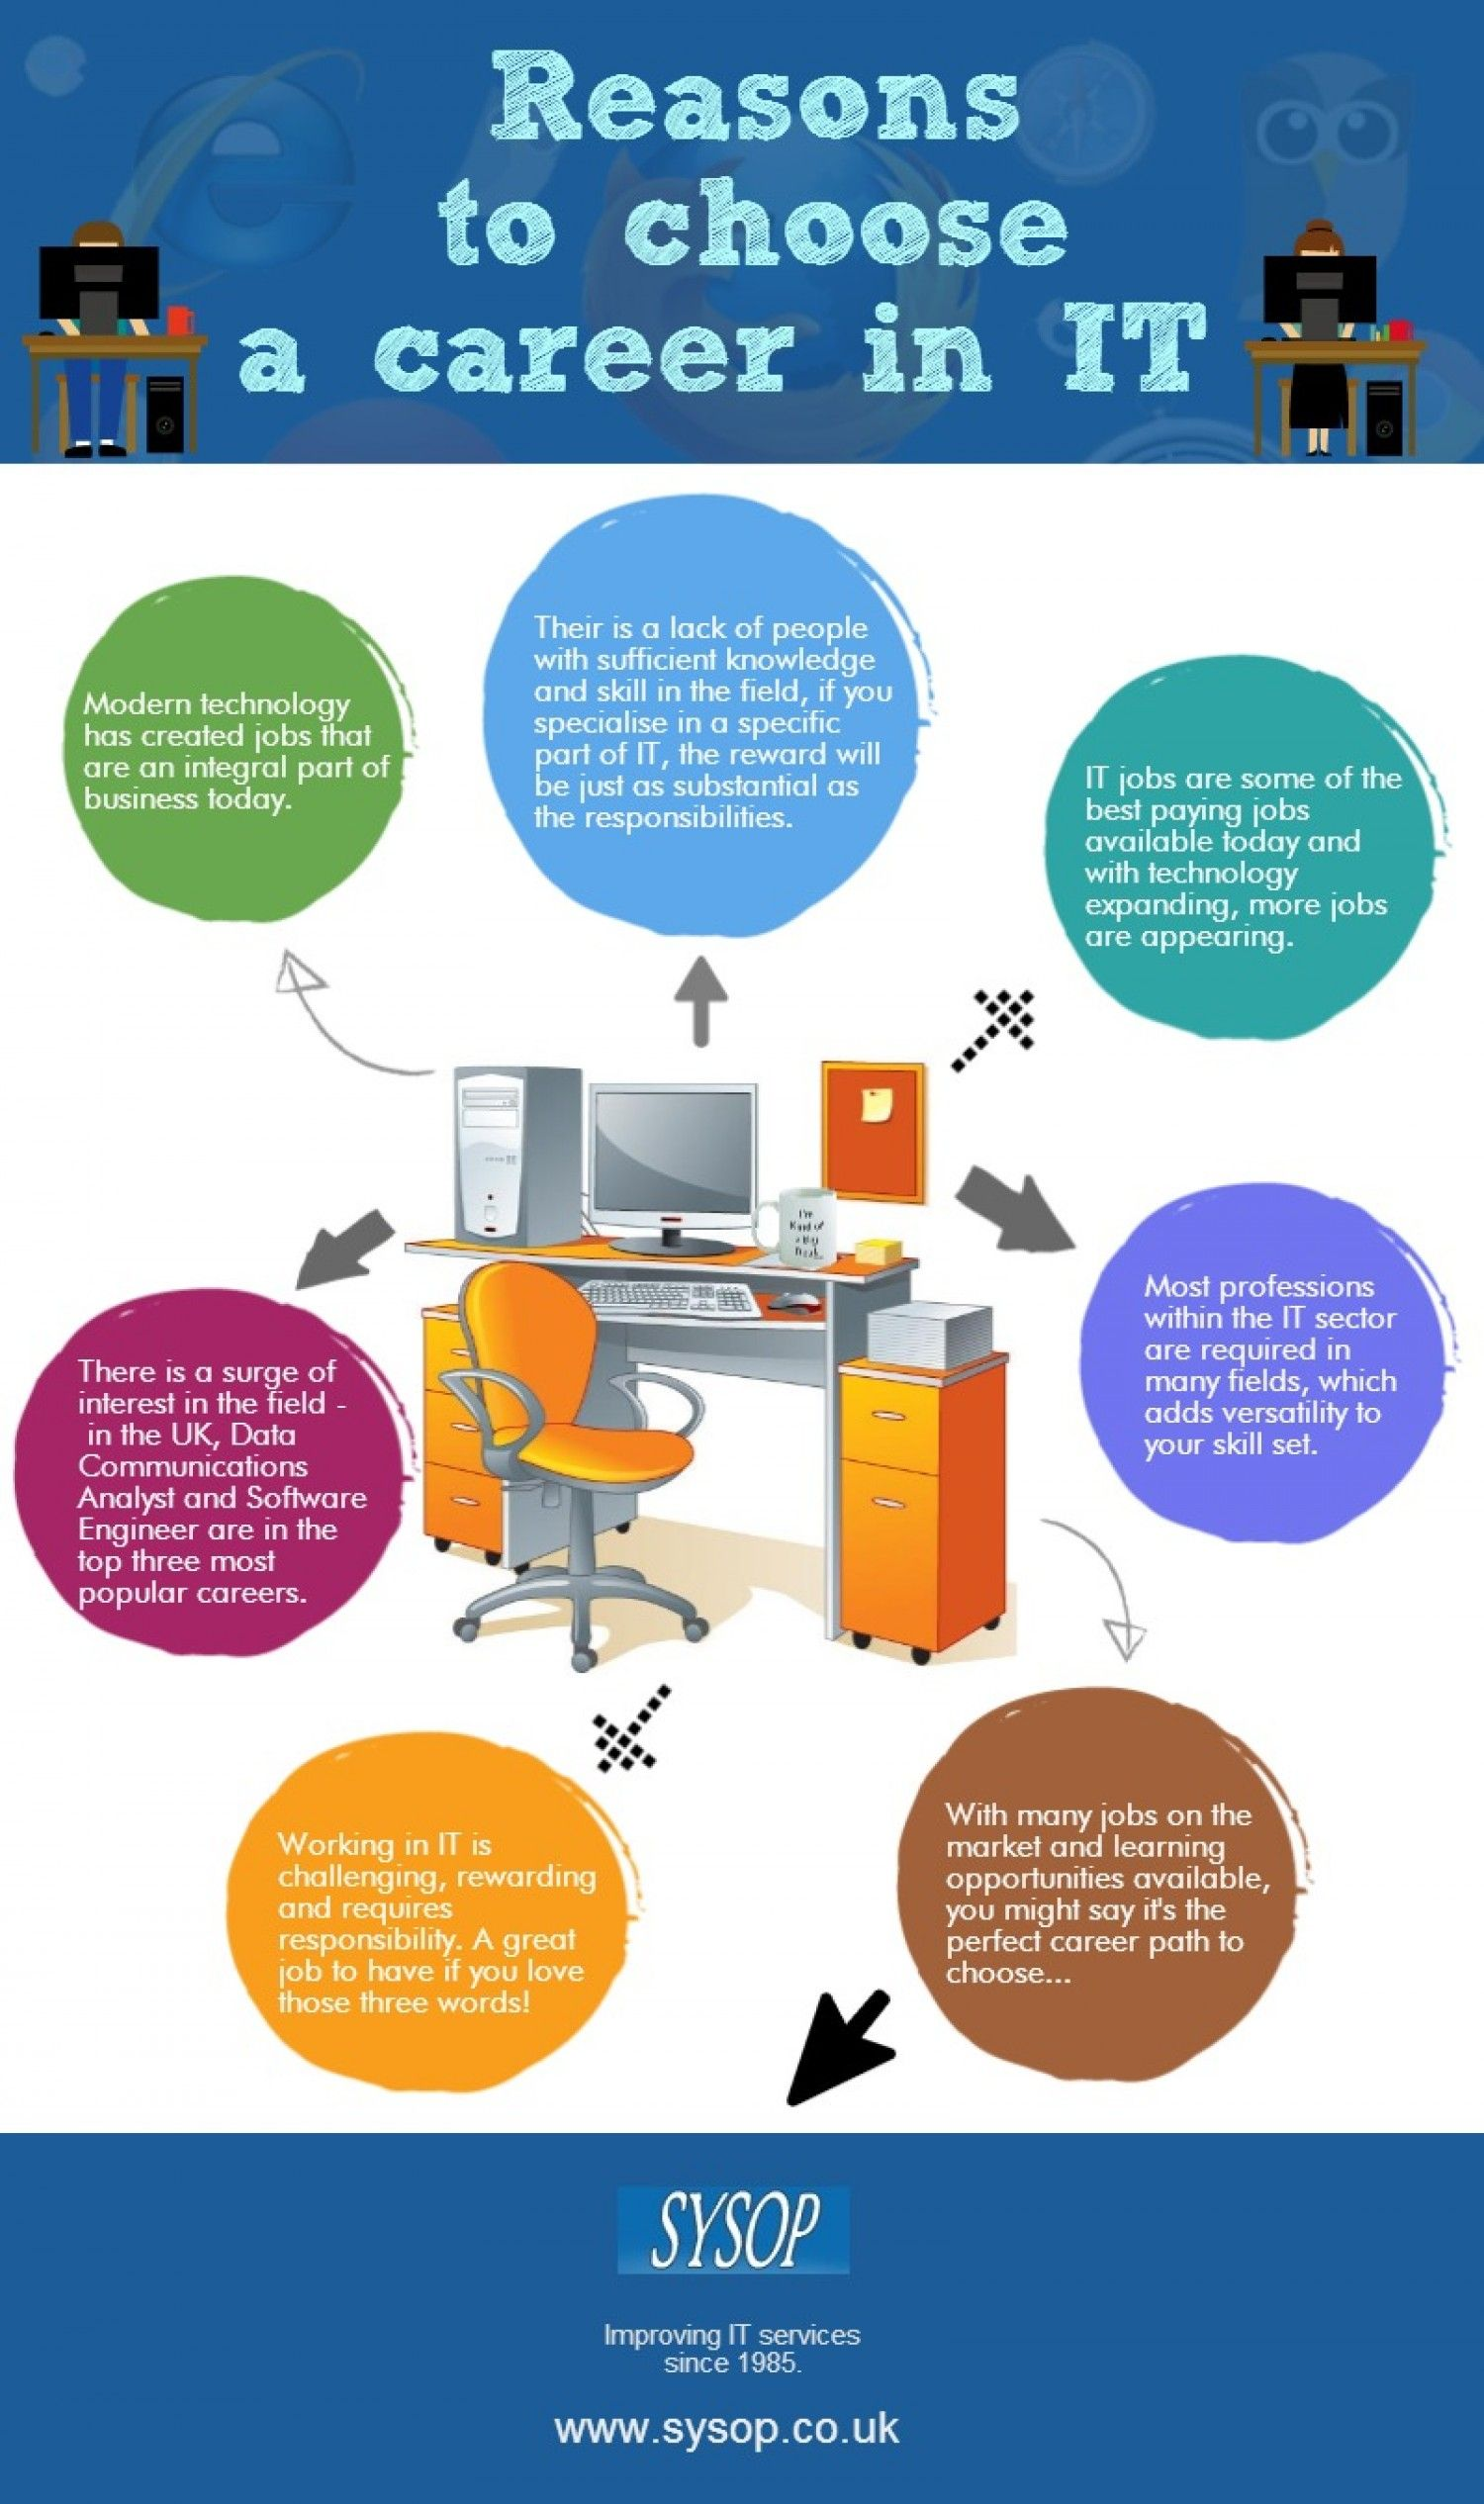 How To Choose The Style Of The: Reasons To Choose A Career In IT Infographic